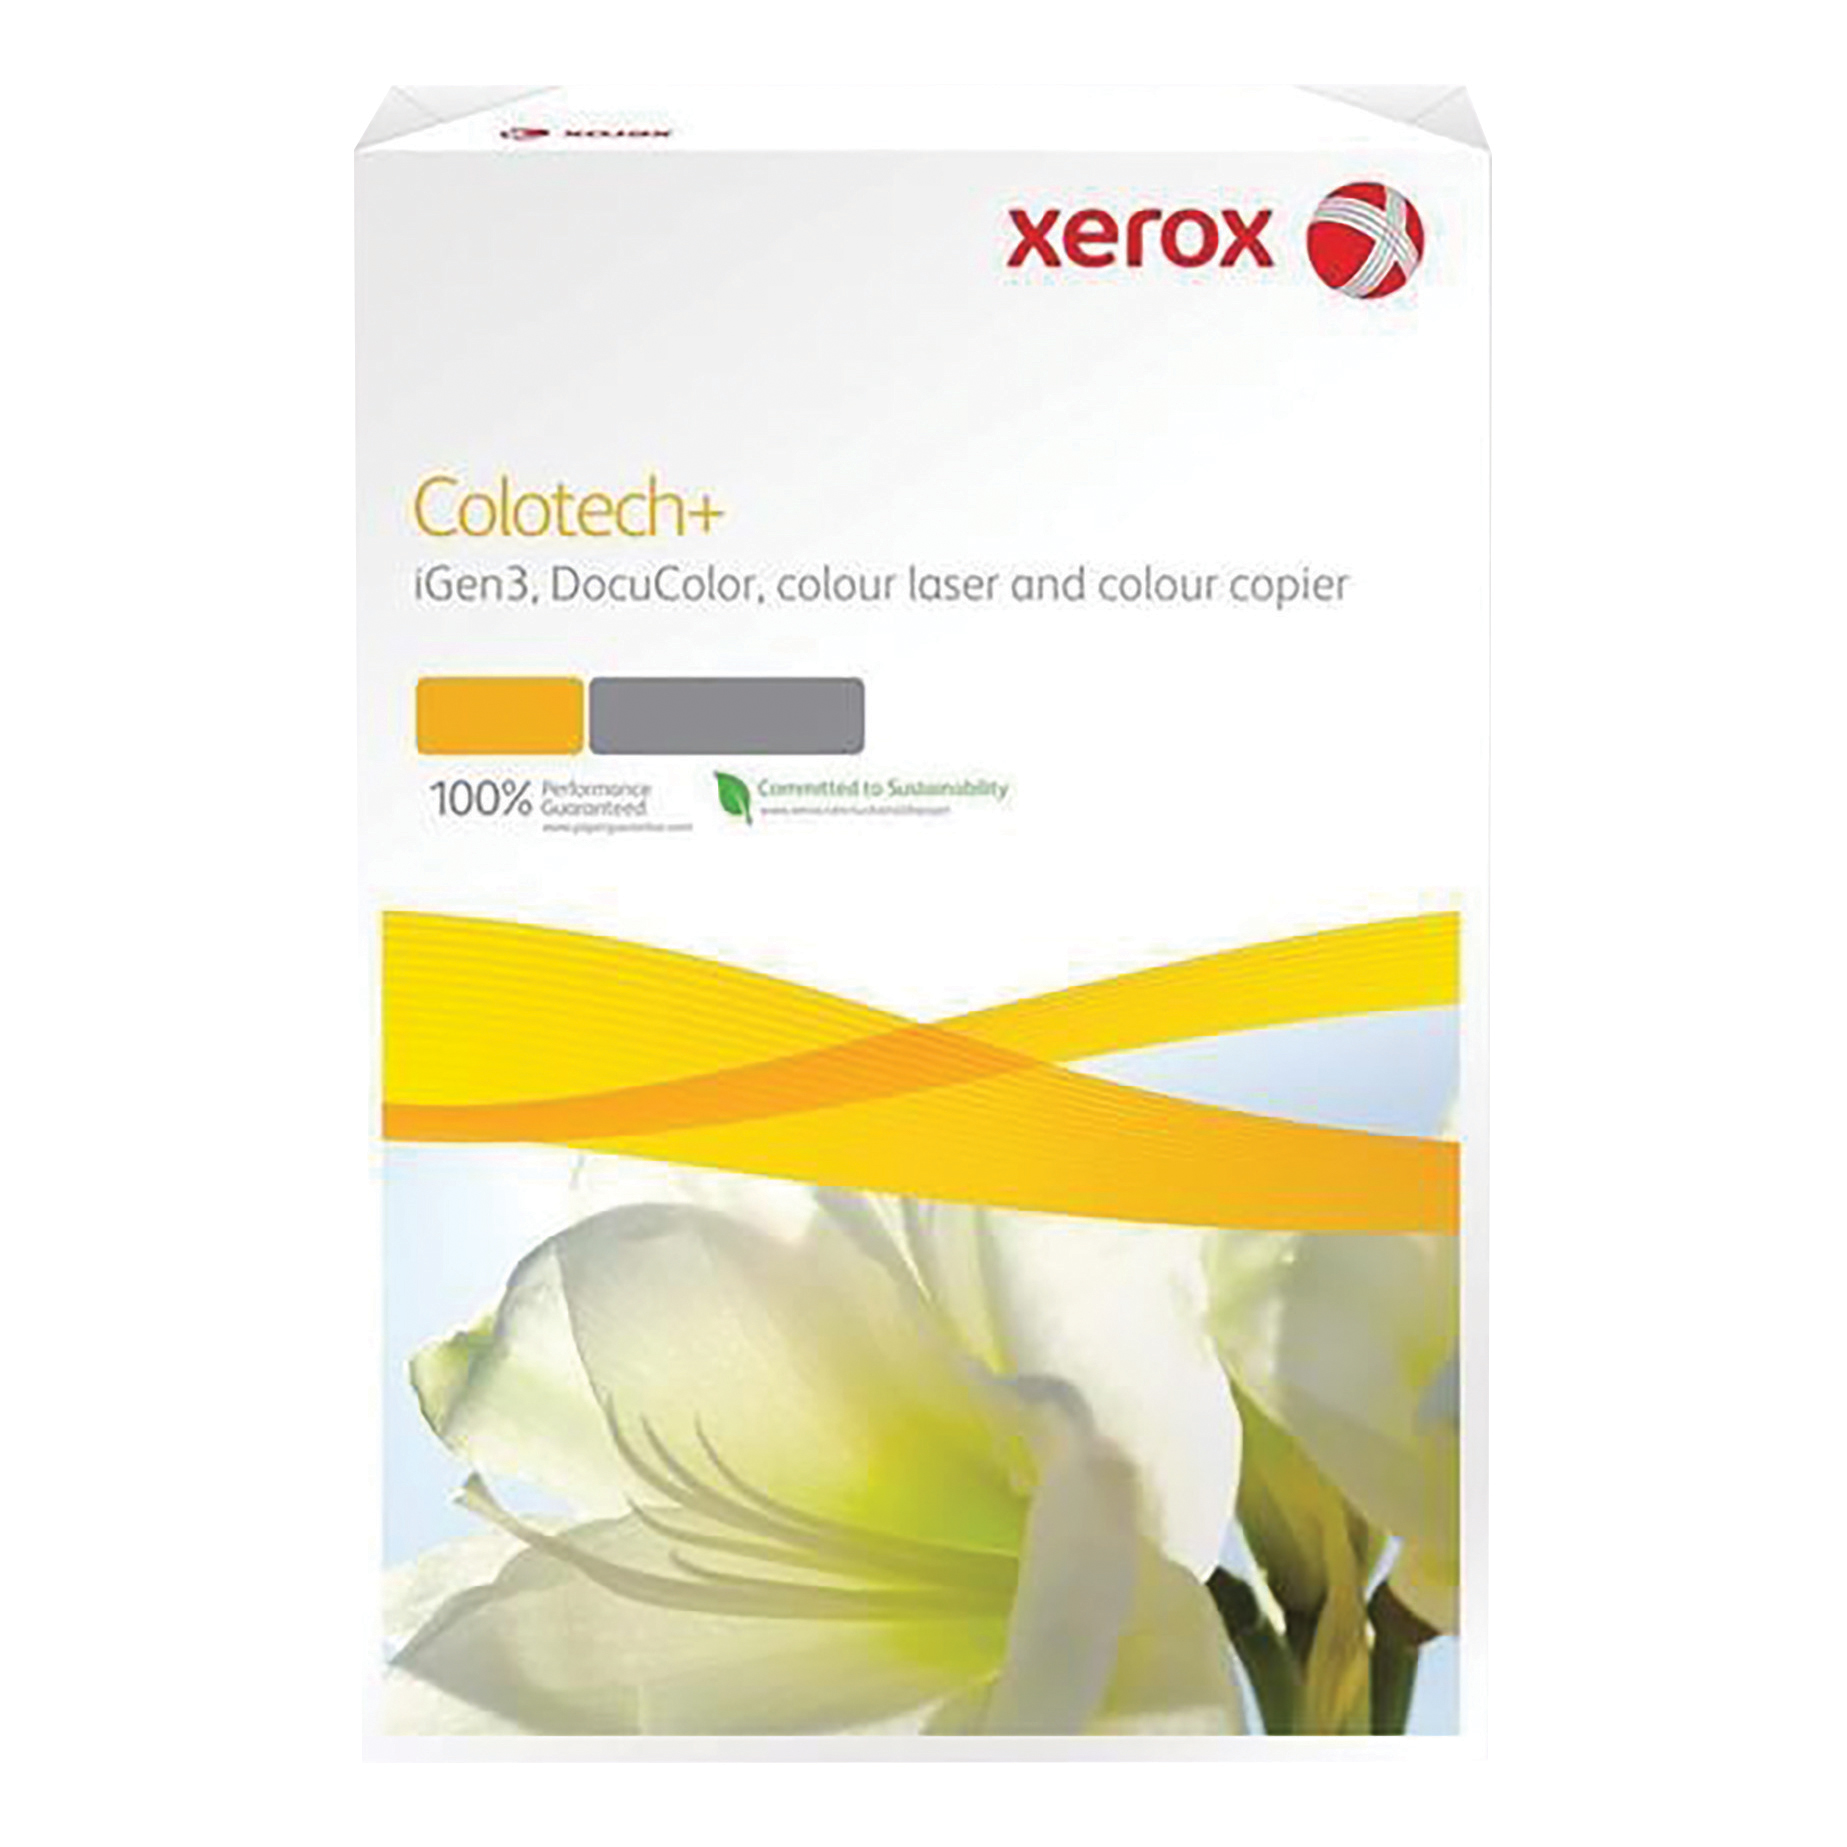 Xerox FSC Coltech+ Digital Colour Paper Prem Ream-Wrapped ColorLok 120gsm A4 White Ref 64463 500 Sheets